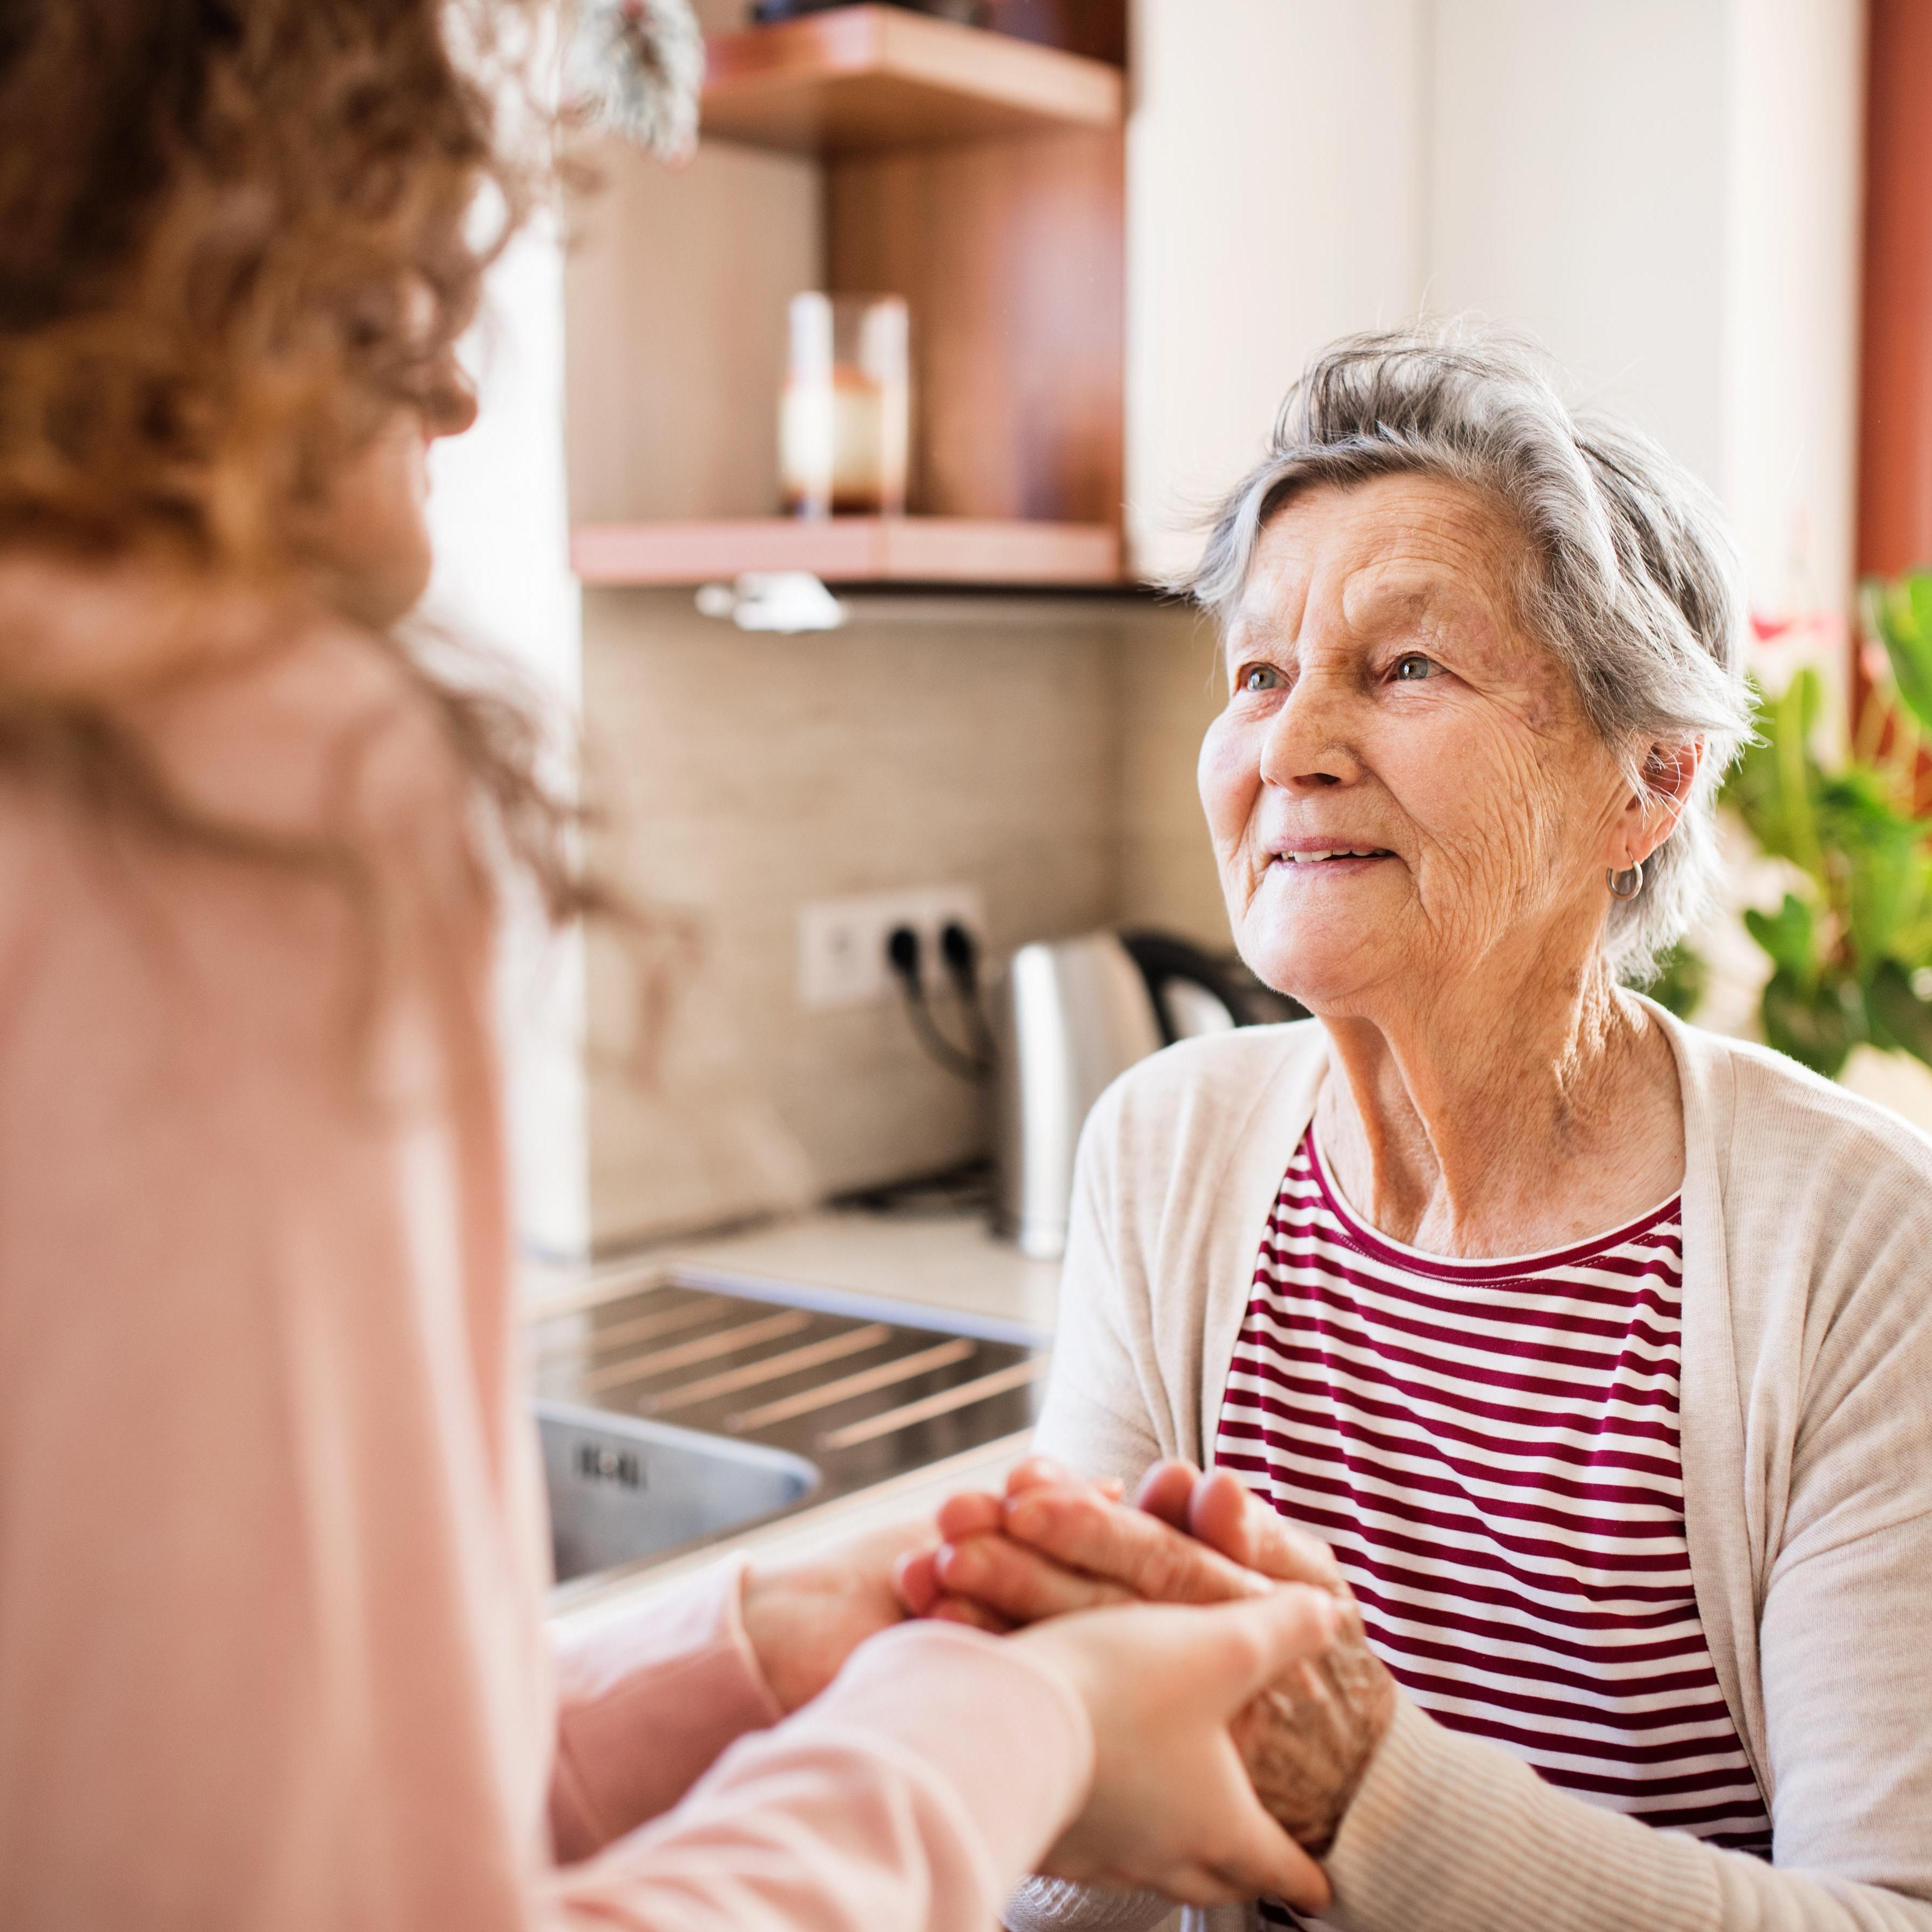 The importance of companionship for the elderly with dementia